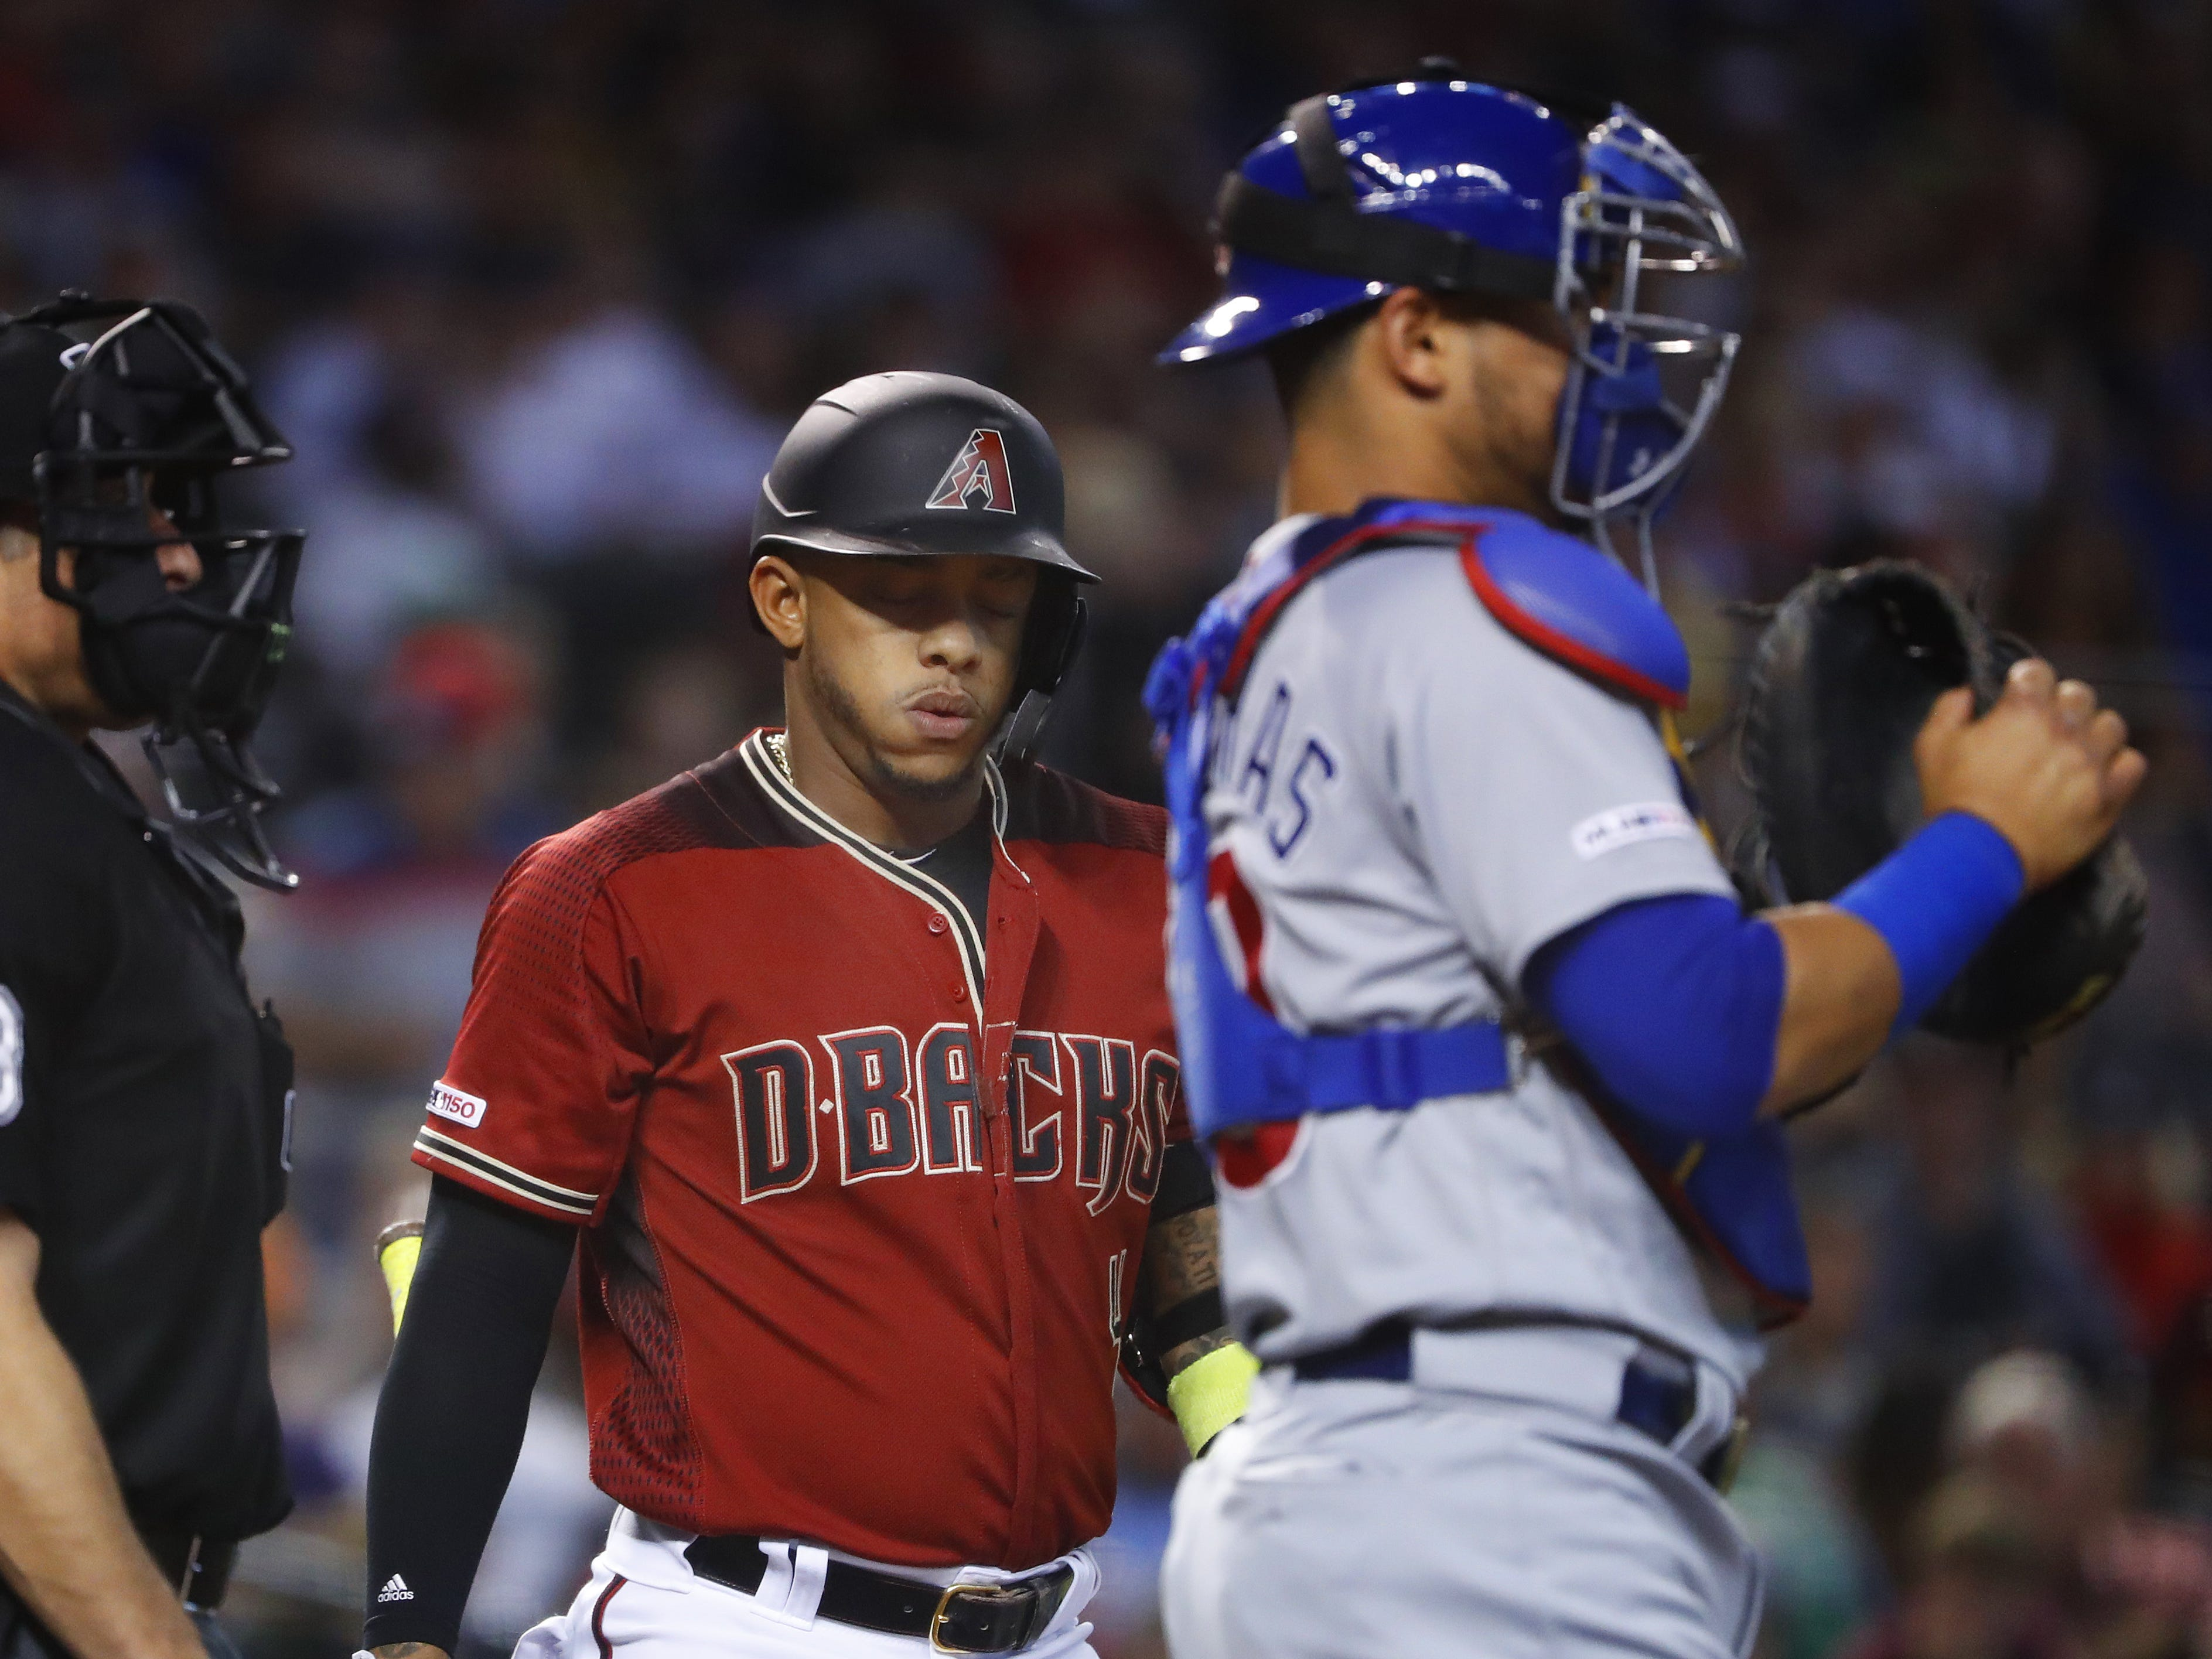 Diamondbacks' Ketel Marte (4) reacts to missing a pitch against the Cubs during the first inning at Chase Field in Phoenix, Ariz. on April 28, 2019.